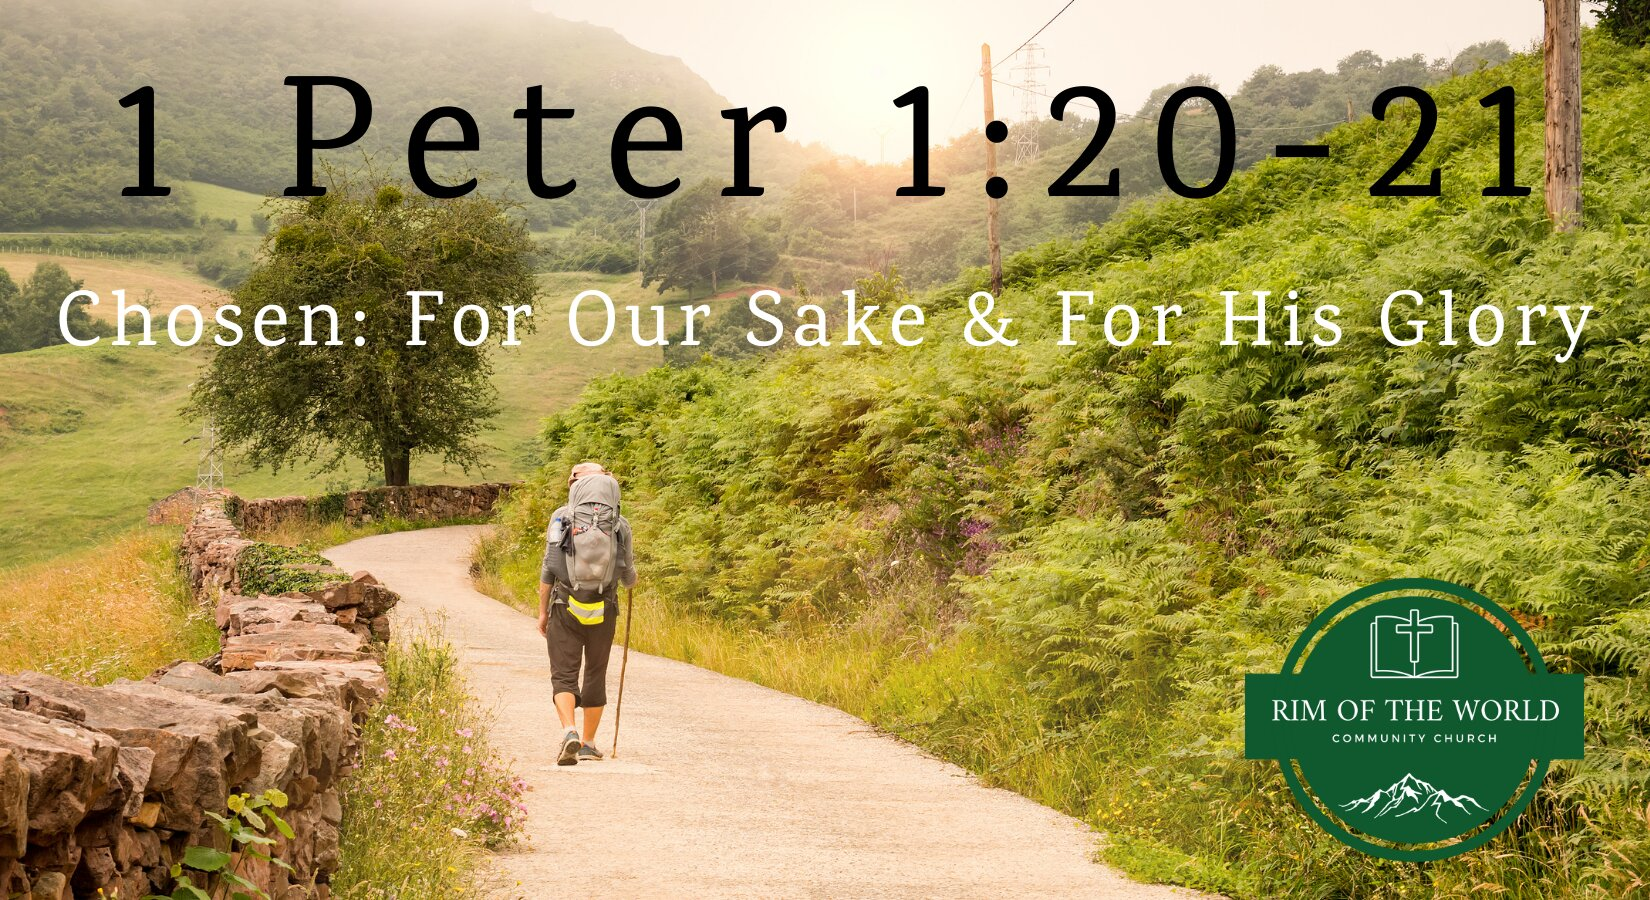 1 Peter 1:20-21 | Chosen: For Our Sake & For His Glory